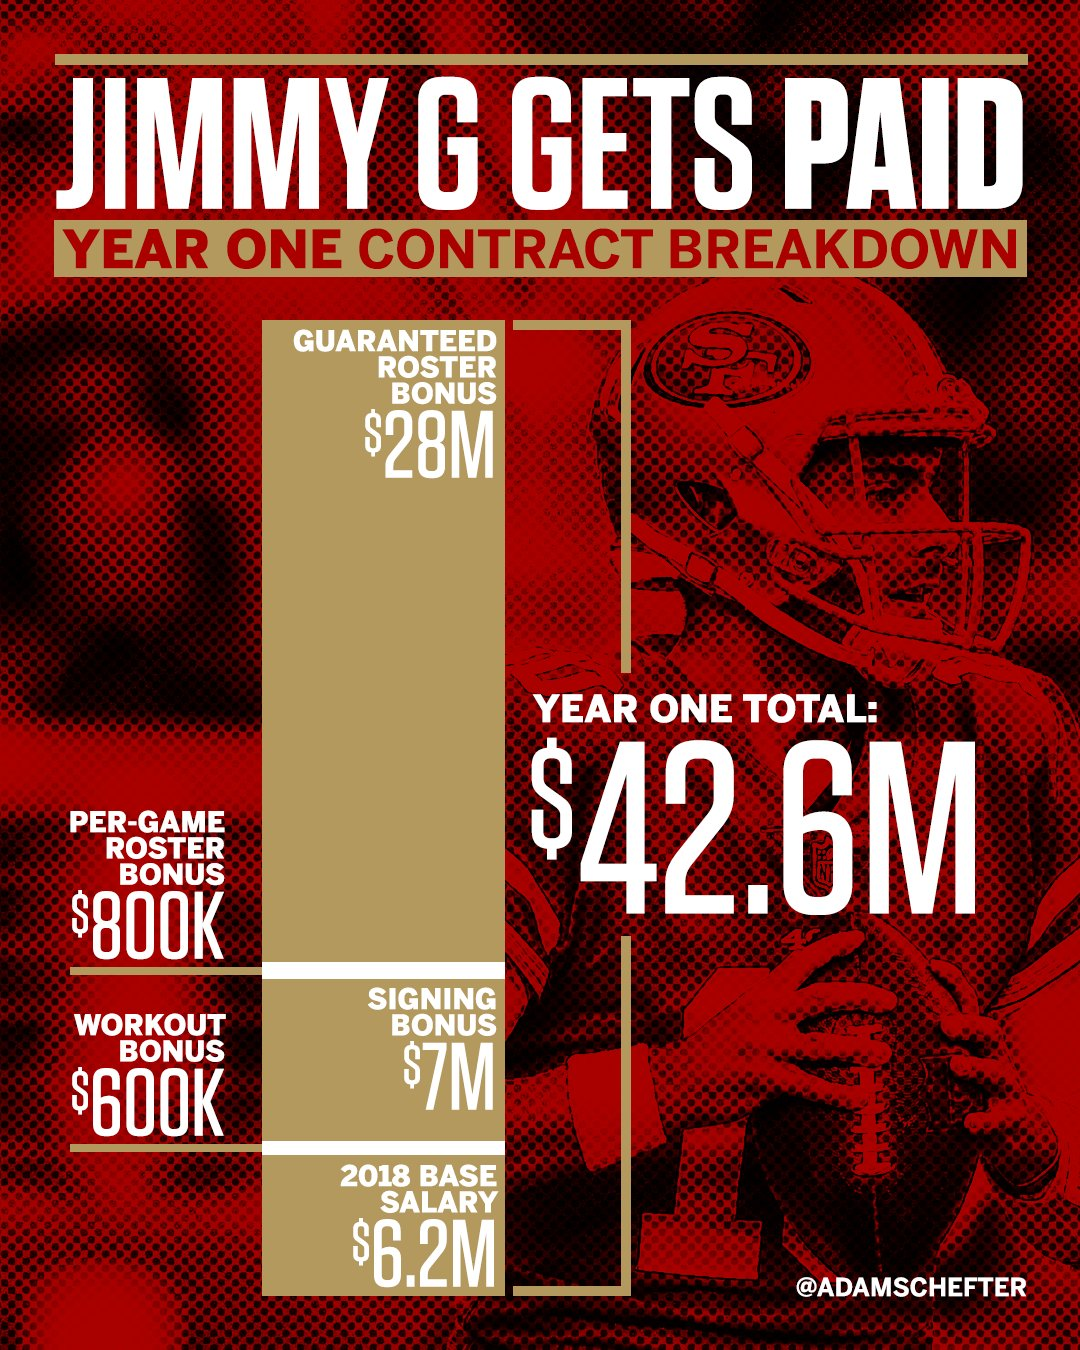 Jimmy Garoppolo is getting ������ in the first year of his new deal. https://t.co/GcJlsgLmCW